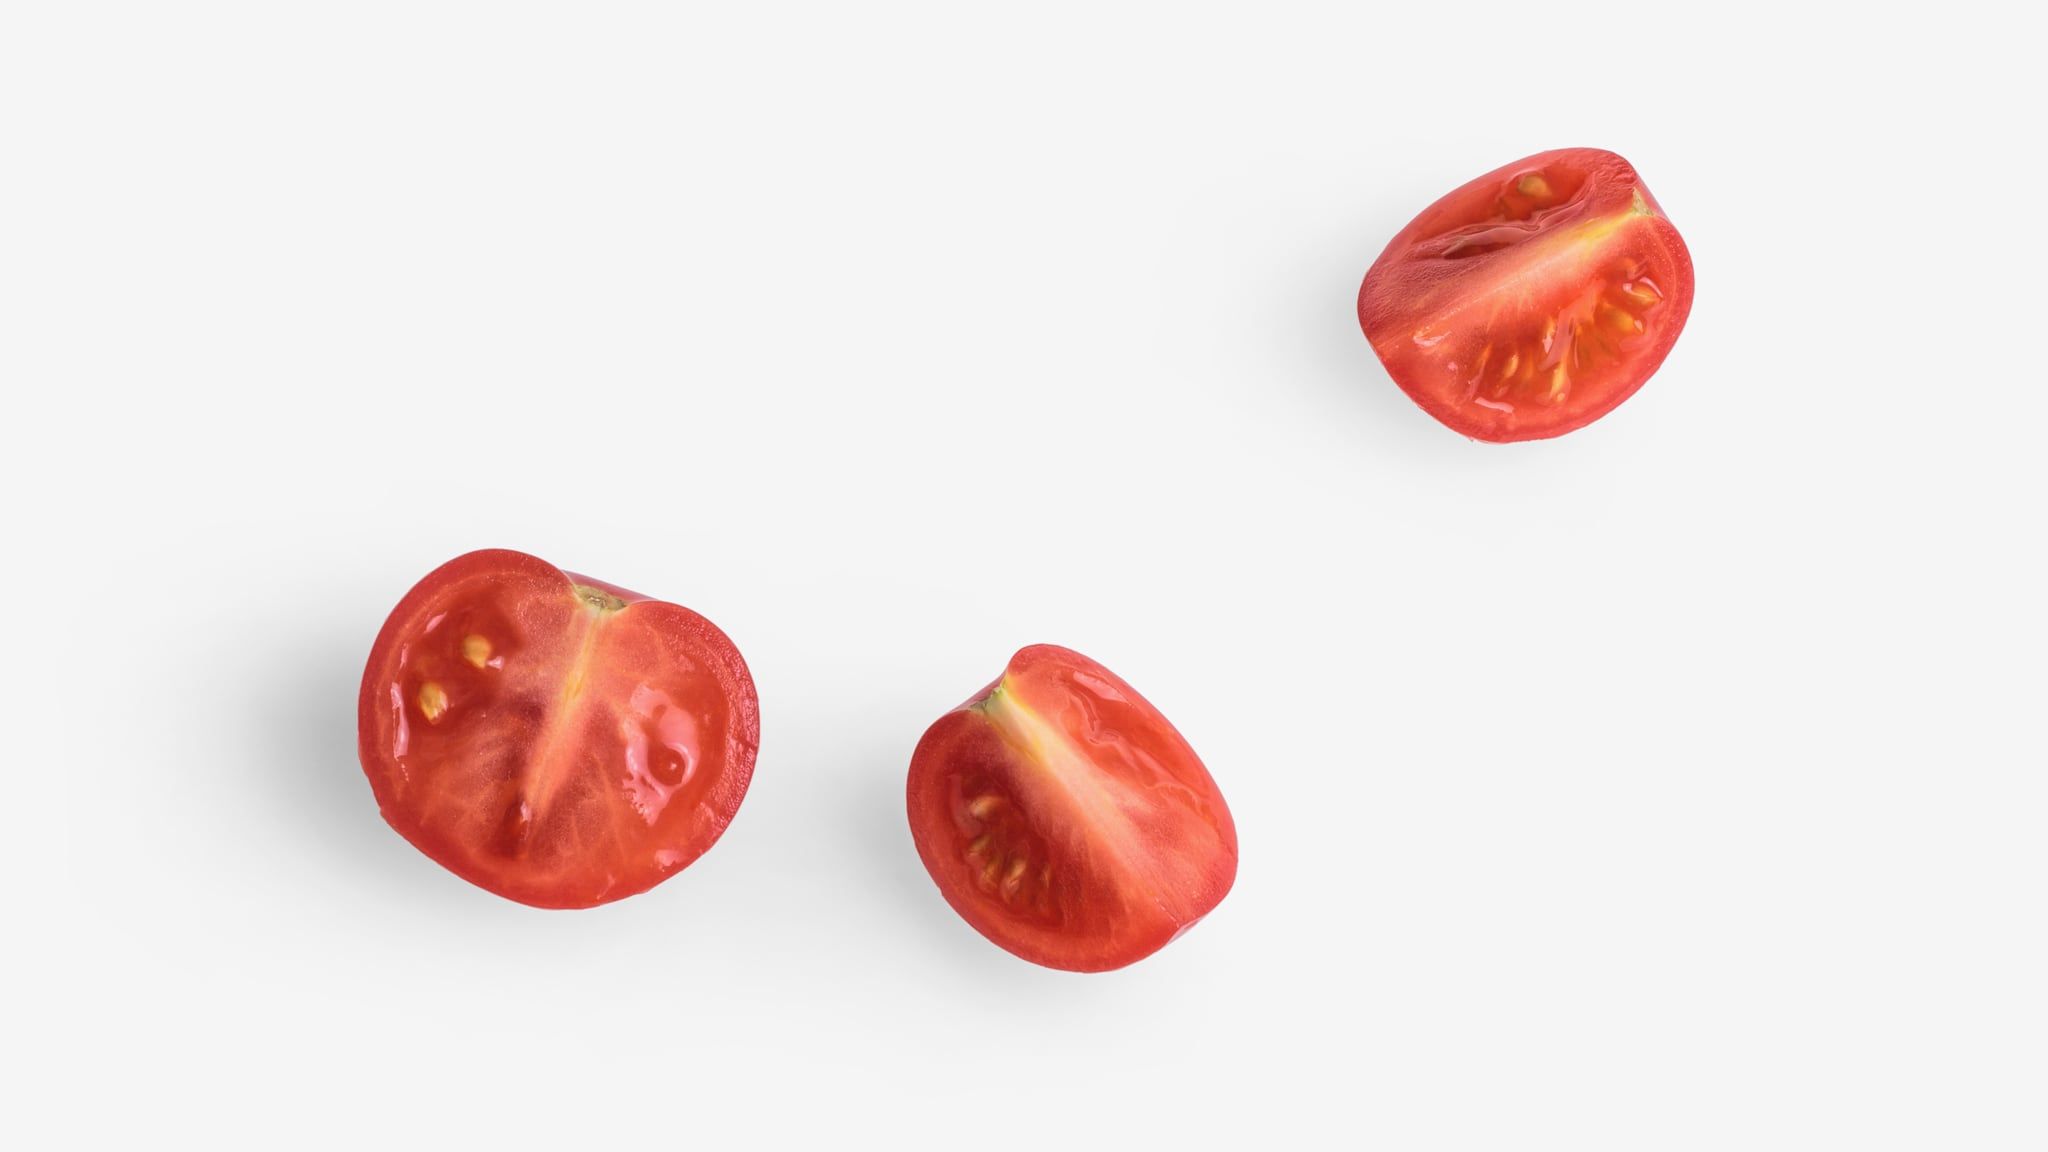 Tomato image asset with transparent background